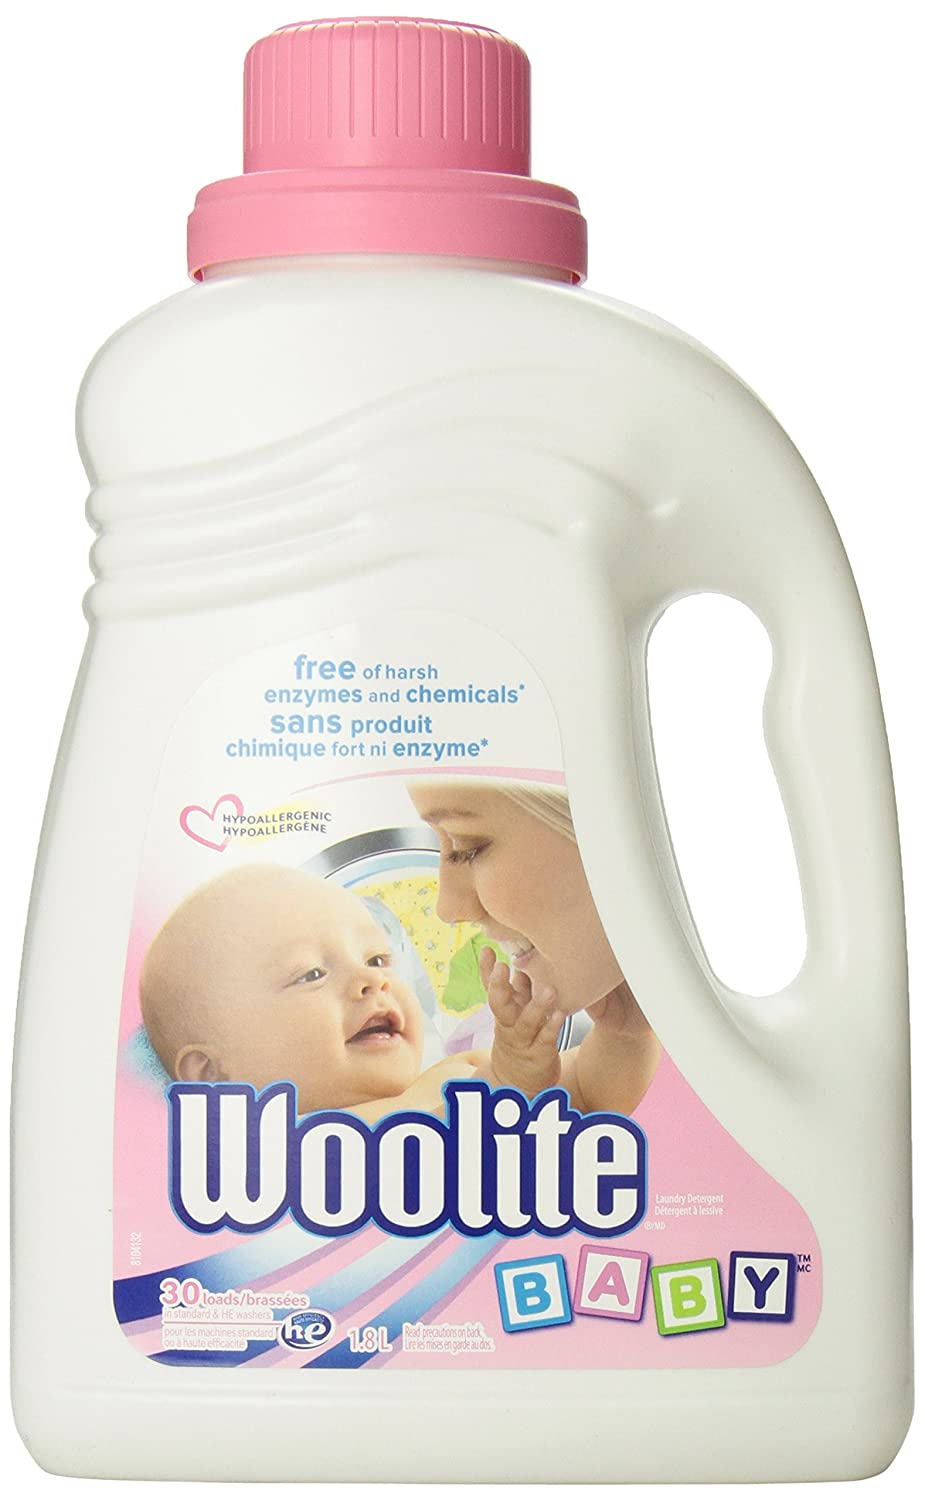 Woolite Baby, Hypoallergenic Laundry Detergent, Free Of Harsh Chemicals,  Standard & He, 18 L: Amazon: Health & Personal Care